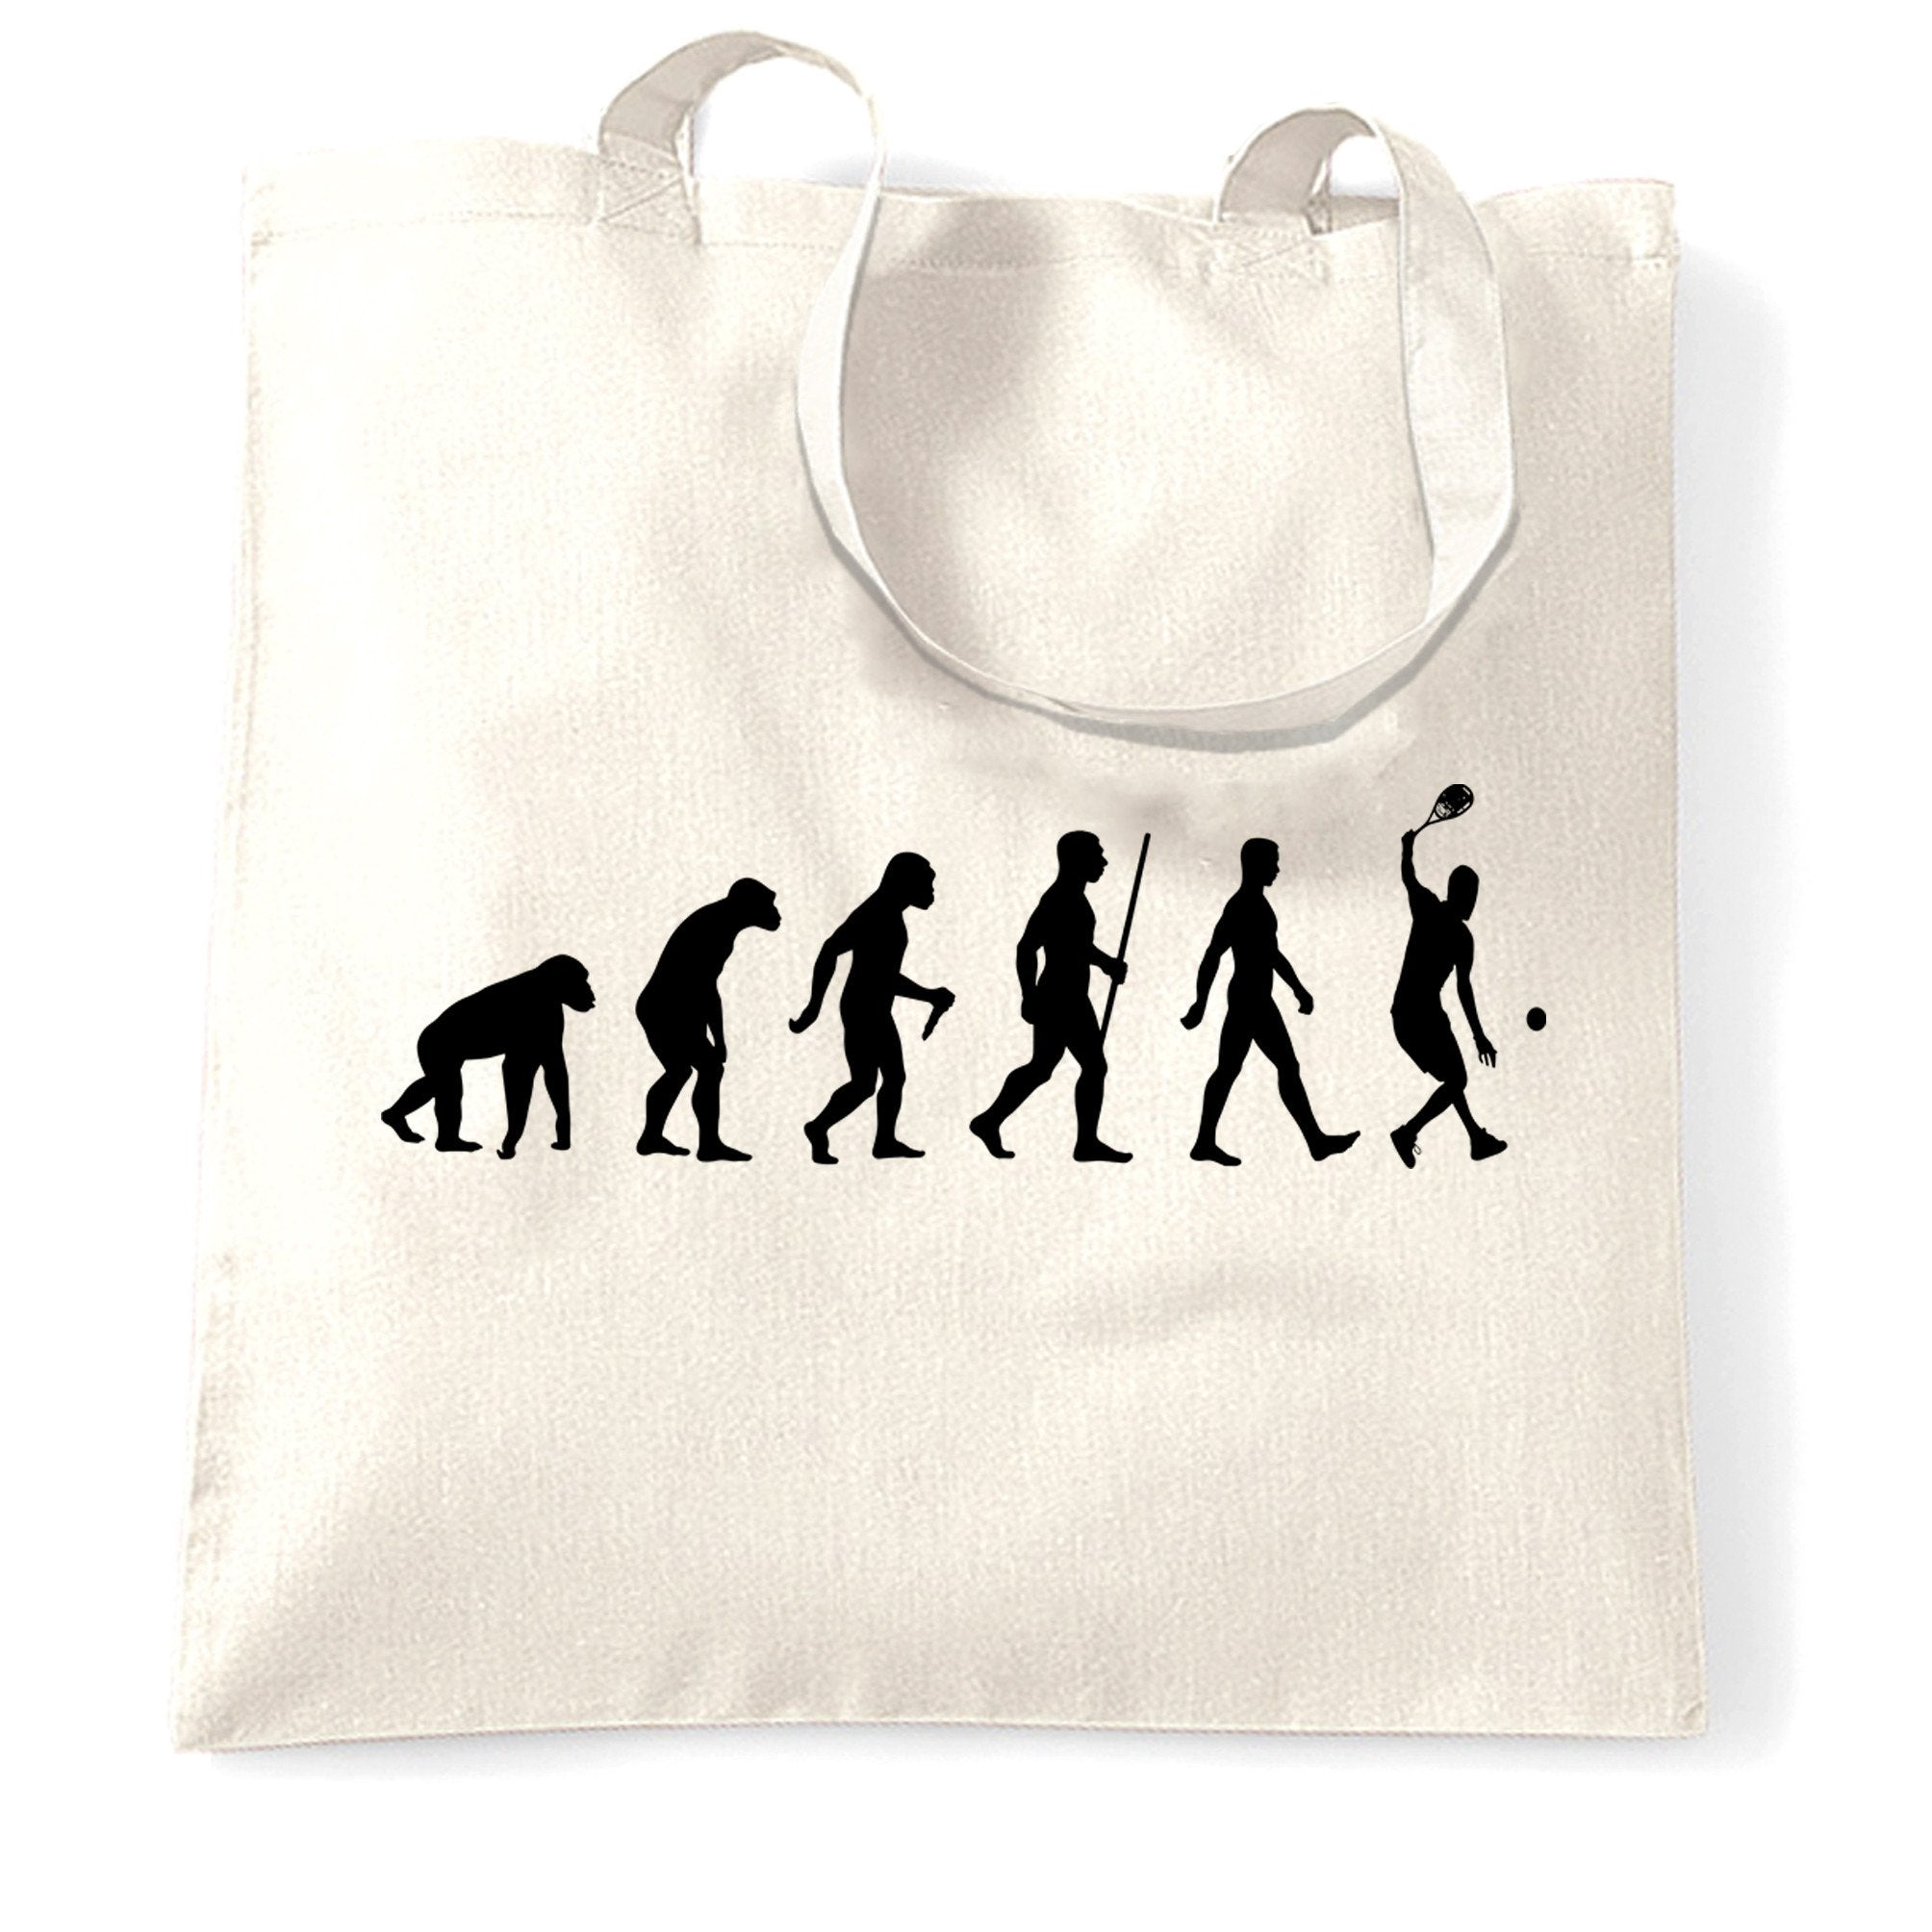 Sports Tote Bag Evolution Of A Tennis Player